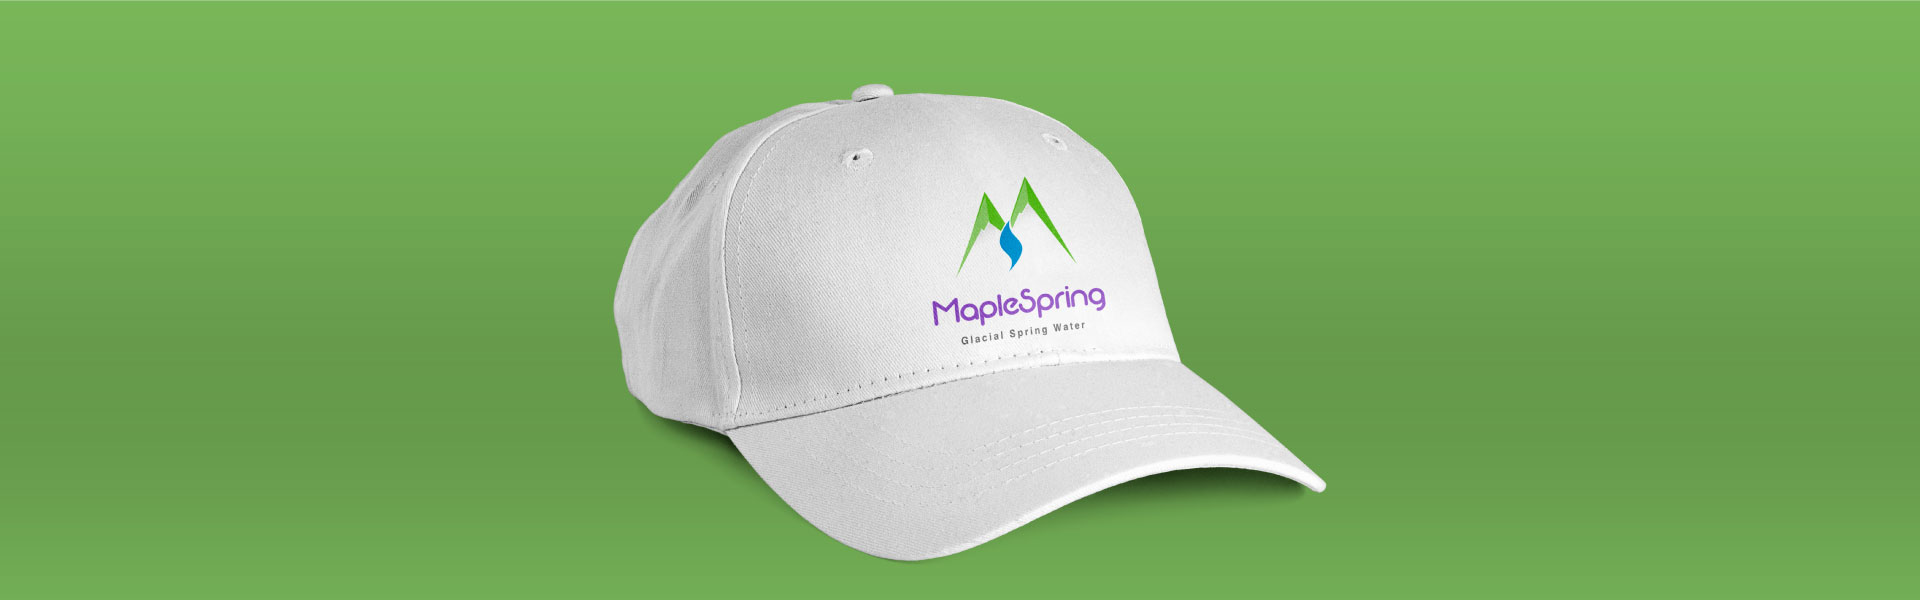 maplespring-brand-logo-design-by-mapleweb-vancouver-canada-white-cap-mock